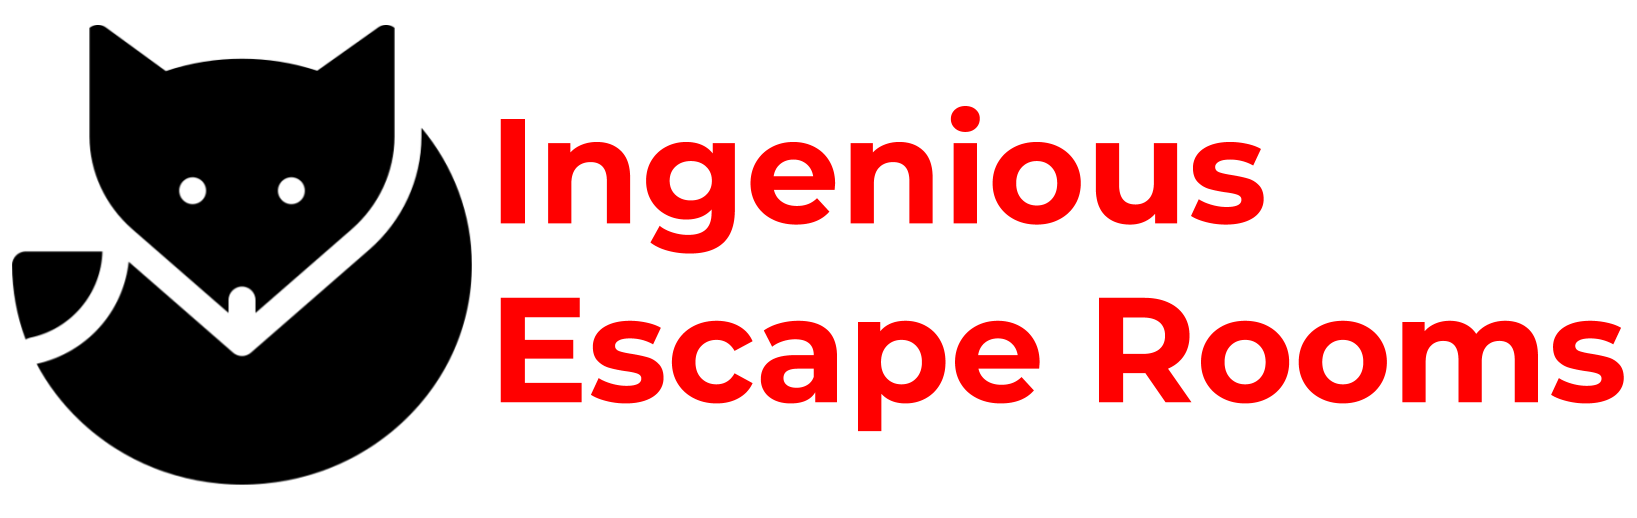 Ingenious Escape Rooms |   cropped-Untitled-drawing-2019-12-06T203623.104-2.jpg